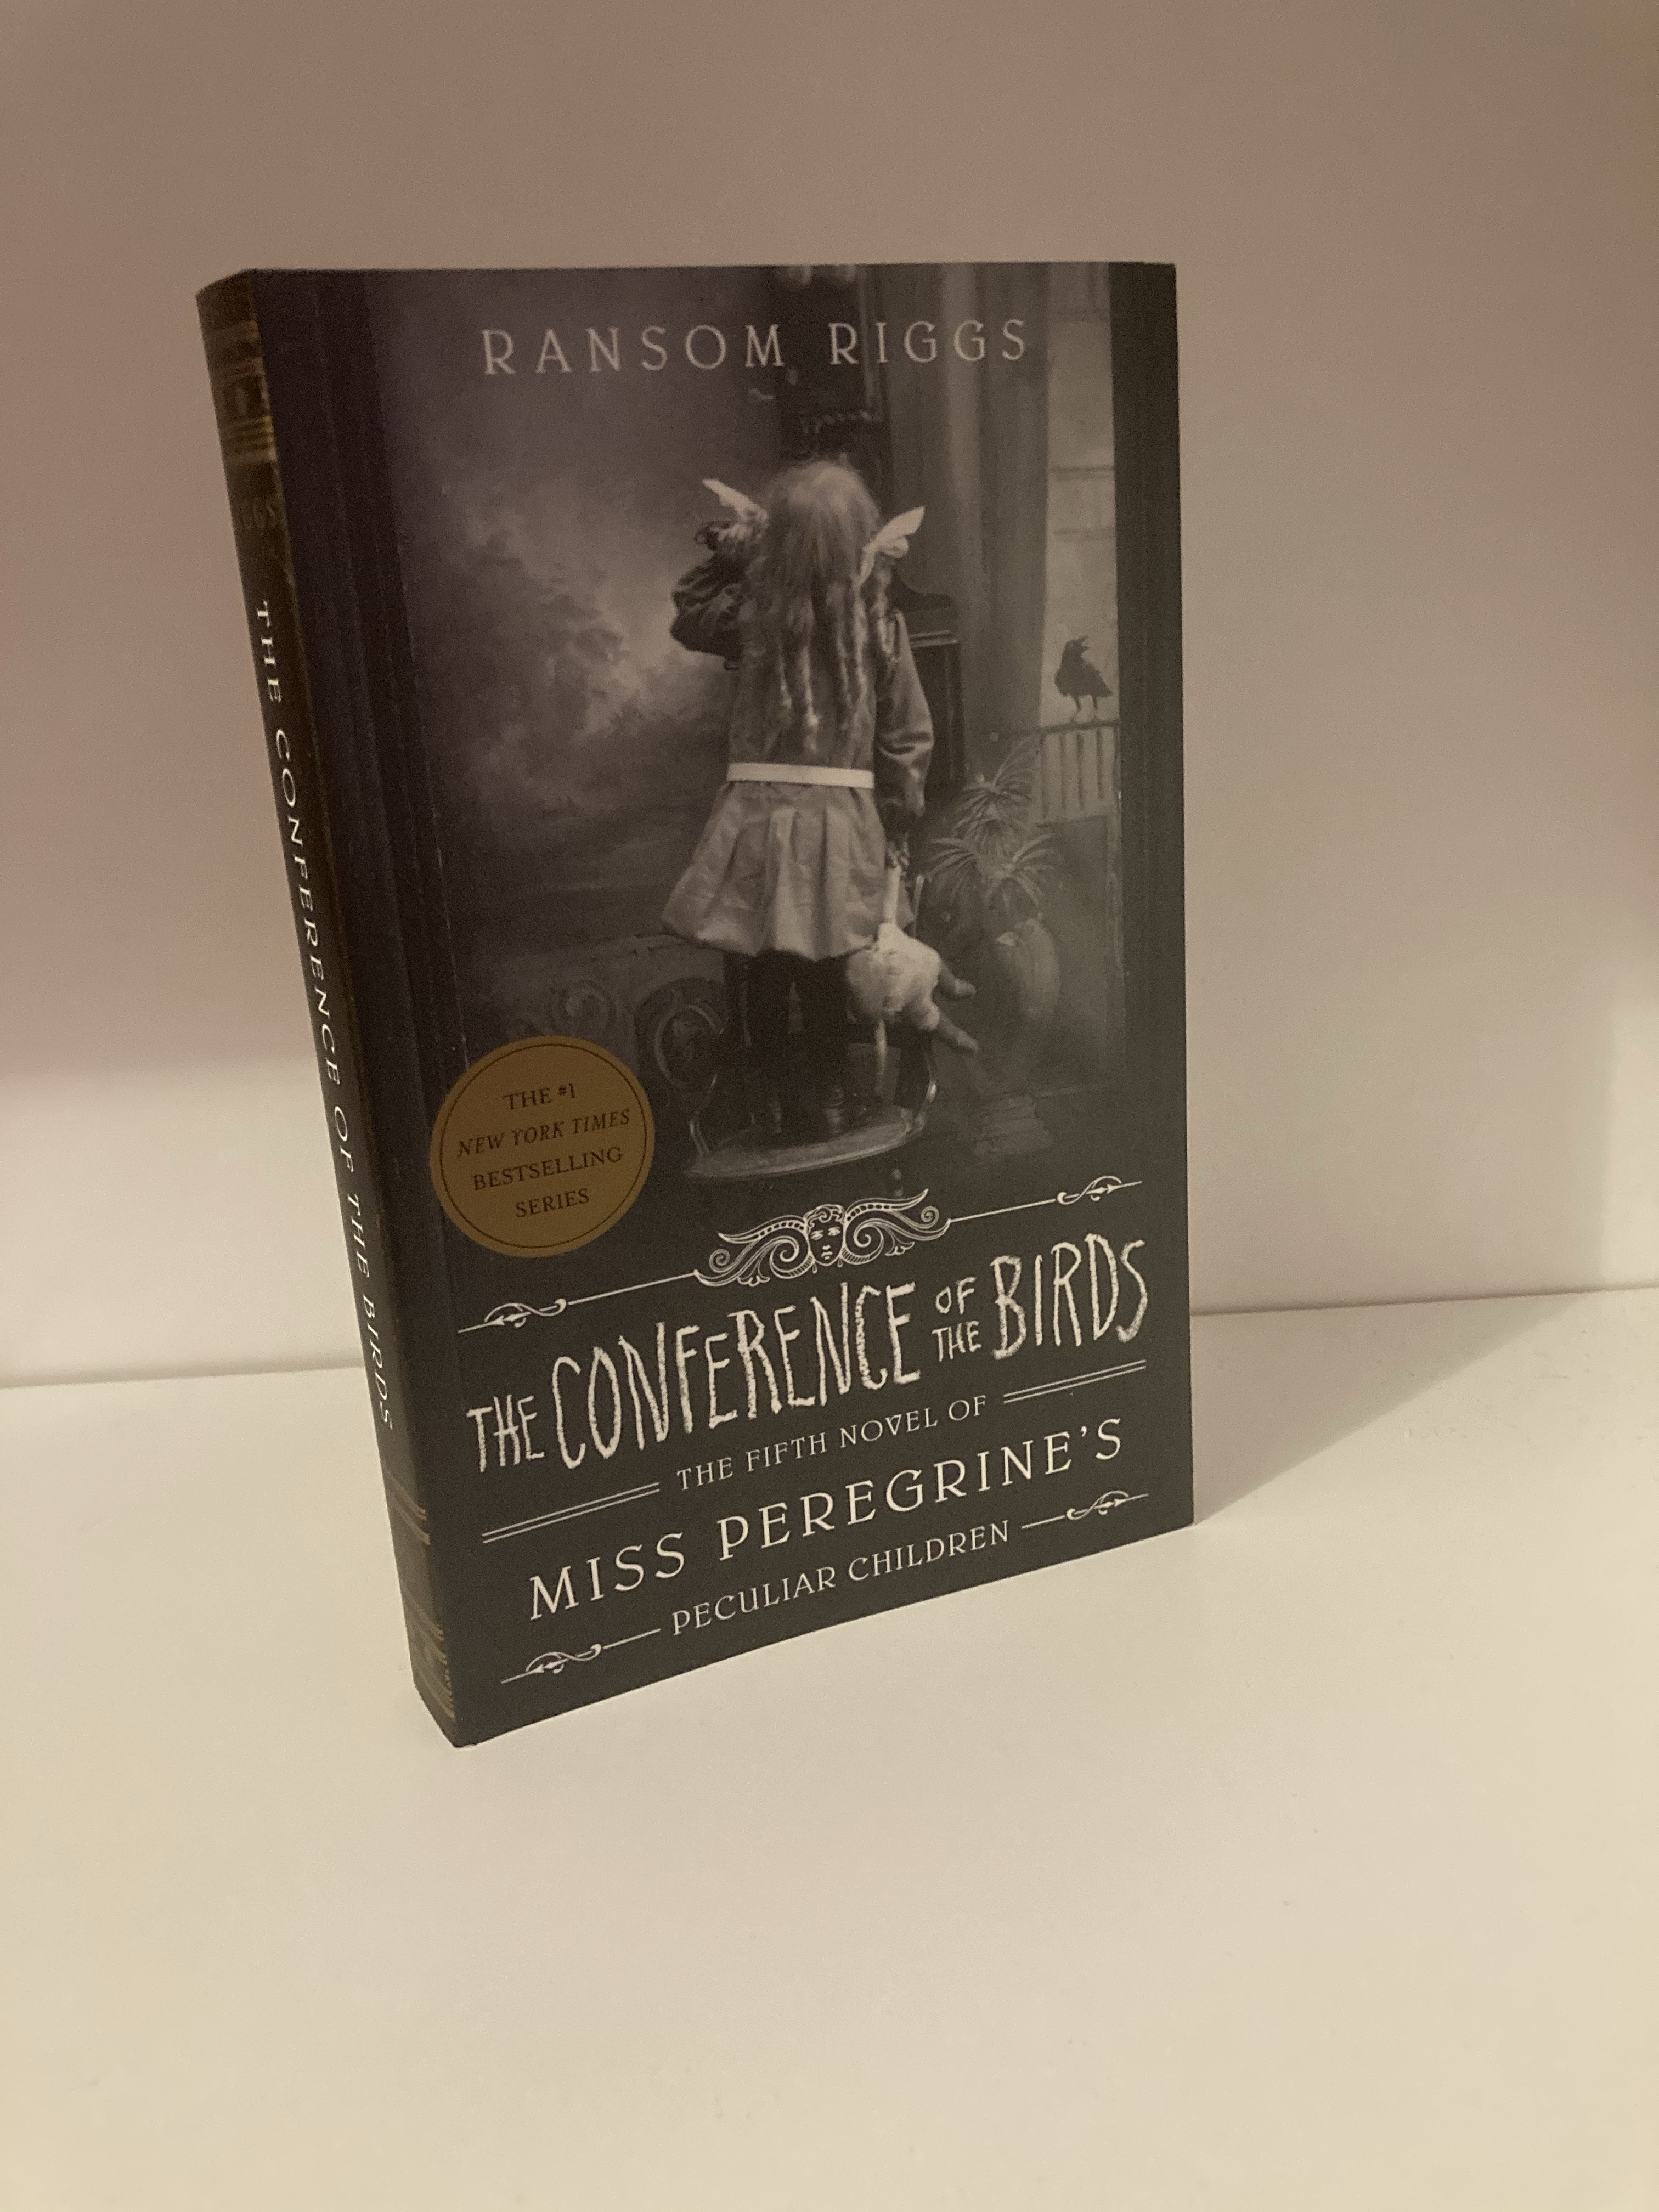 The cover of The Conference of the Birds by Ransom Riggs